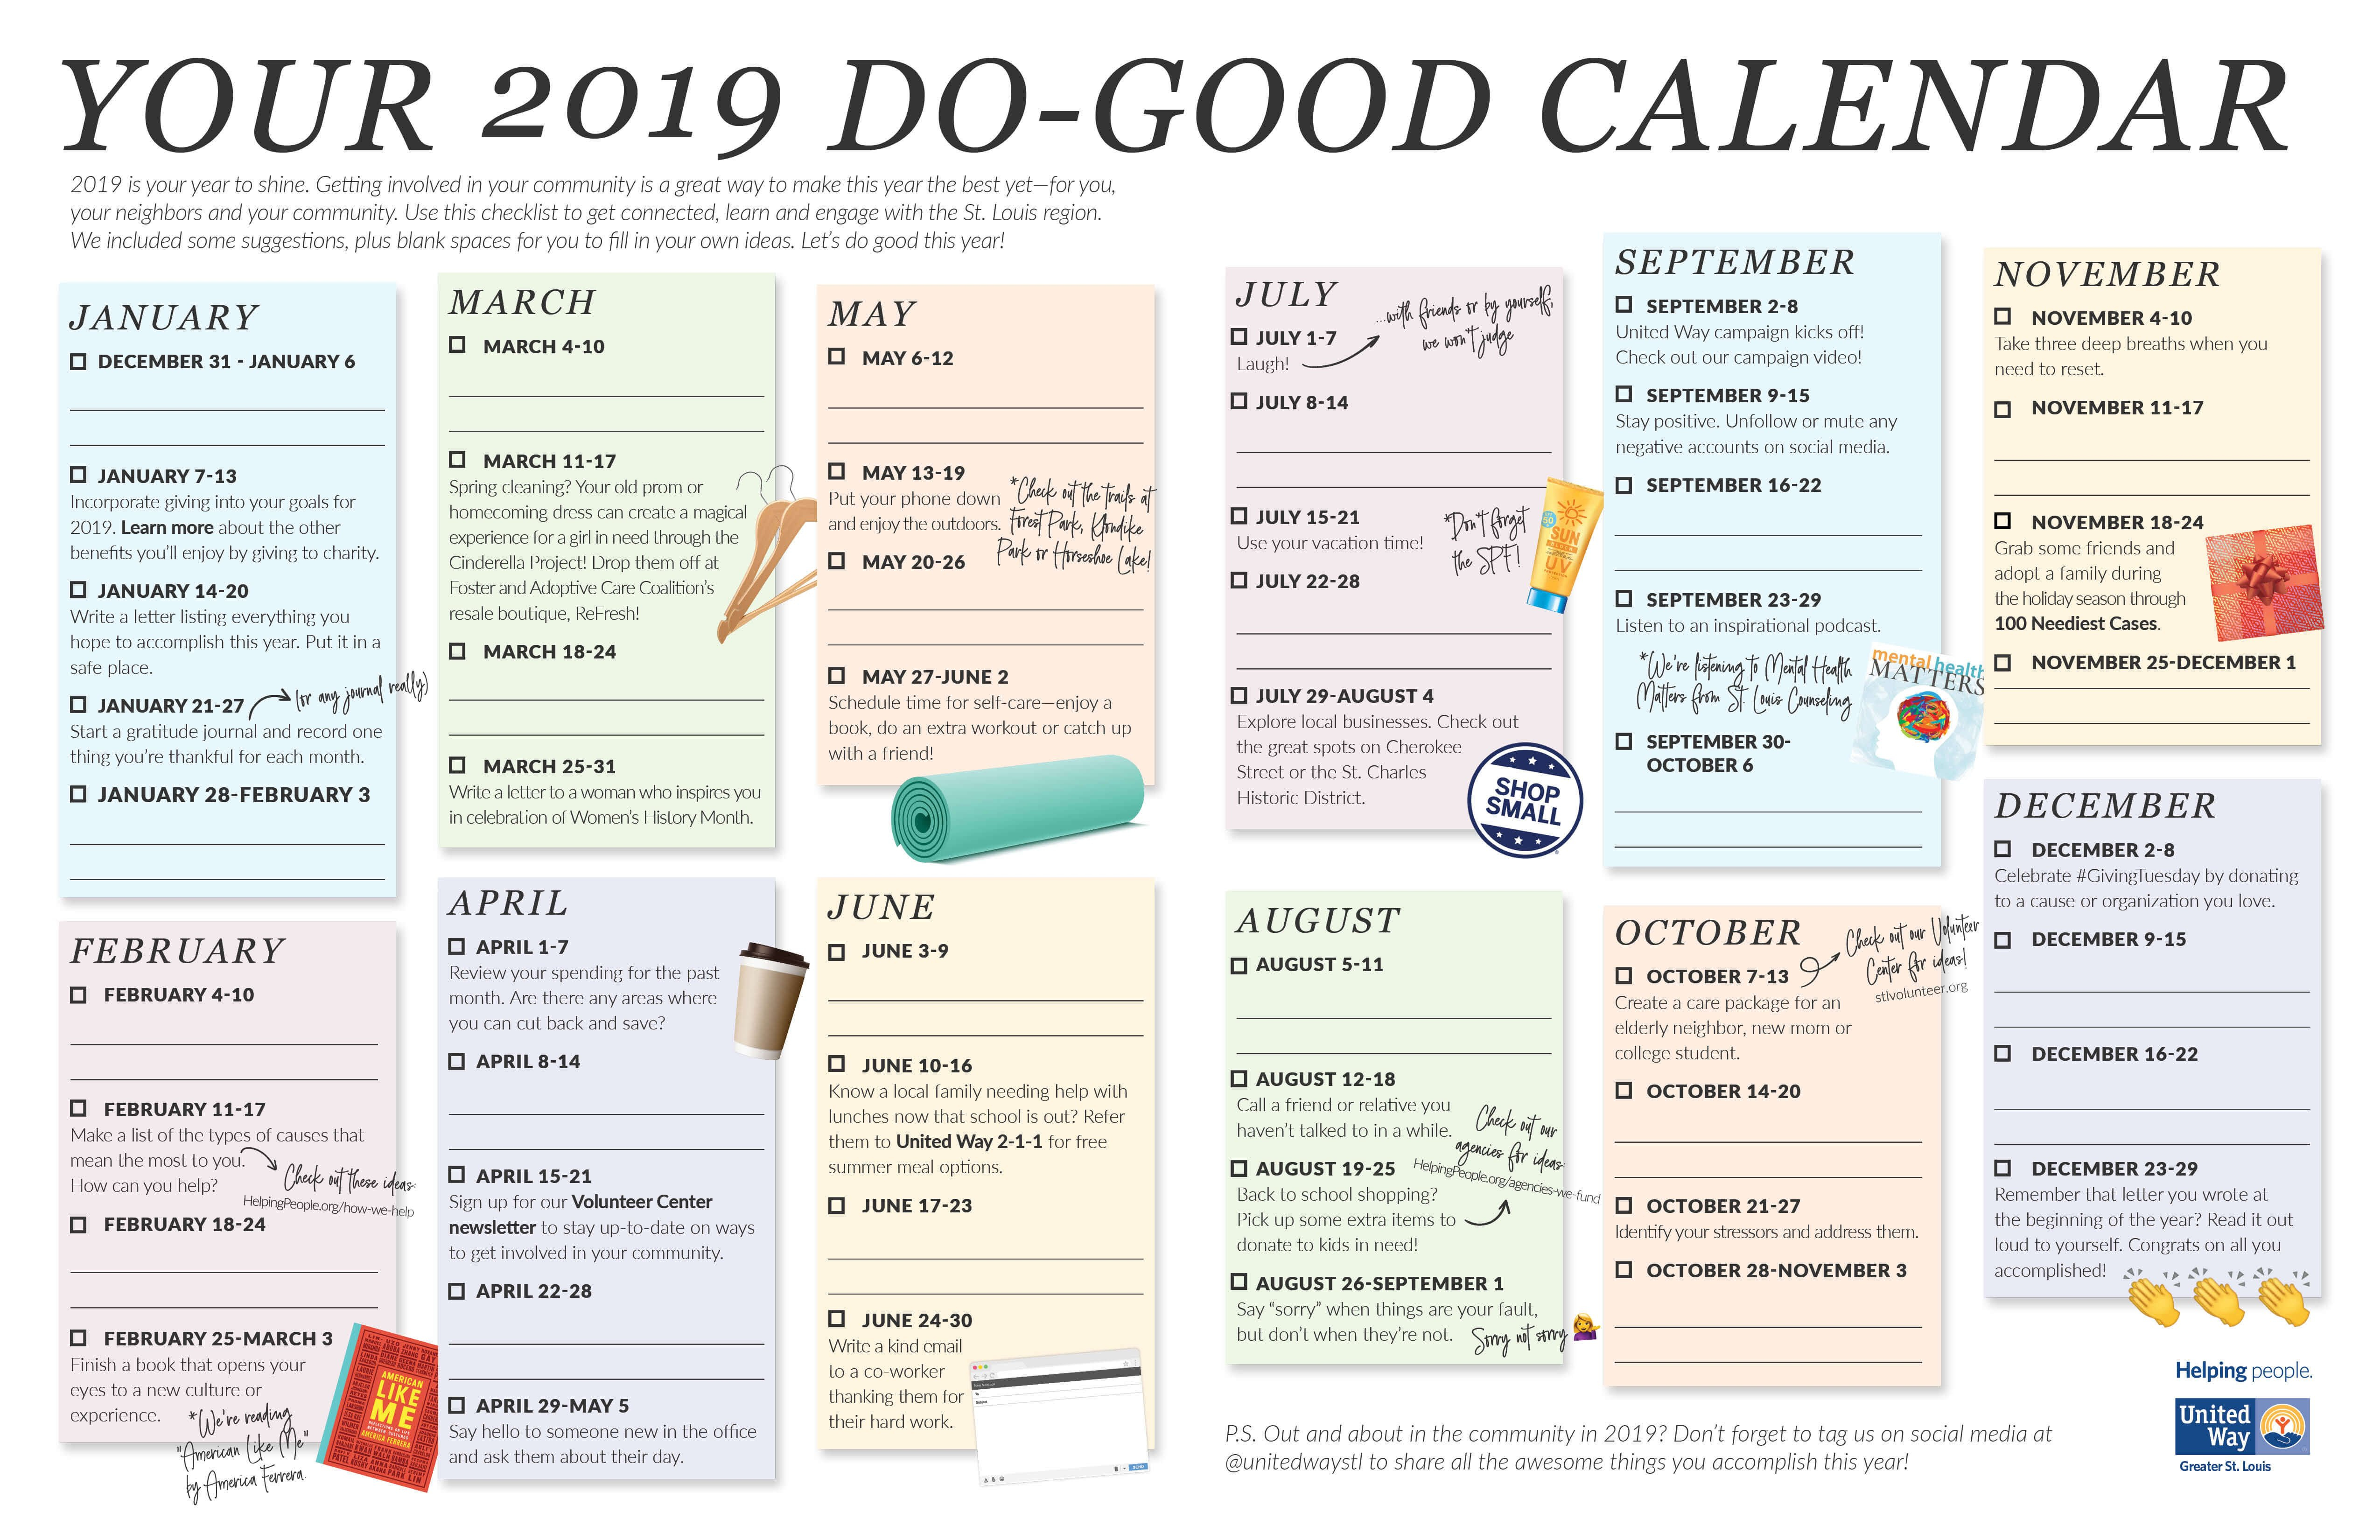 Your 2019 Do-Good Calendar | United Way Greater St. Louis Calendar 2019 Fill In